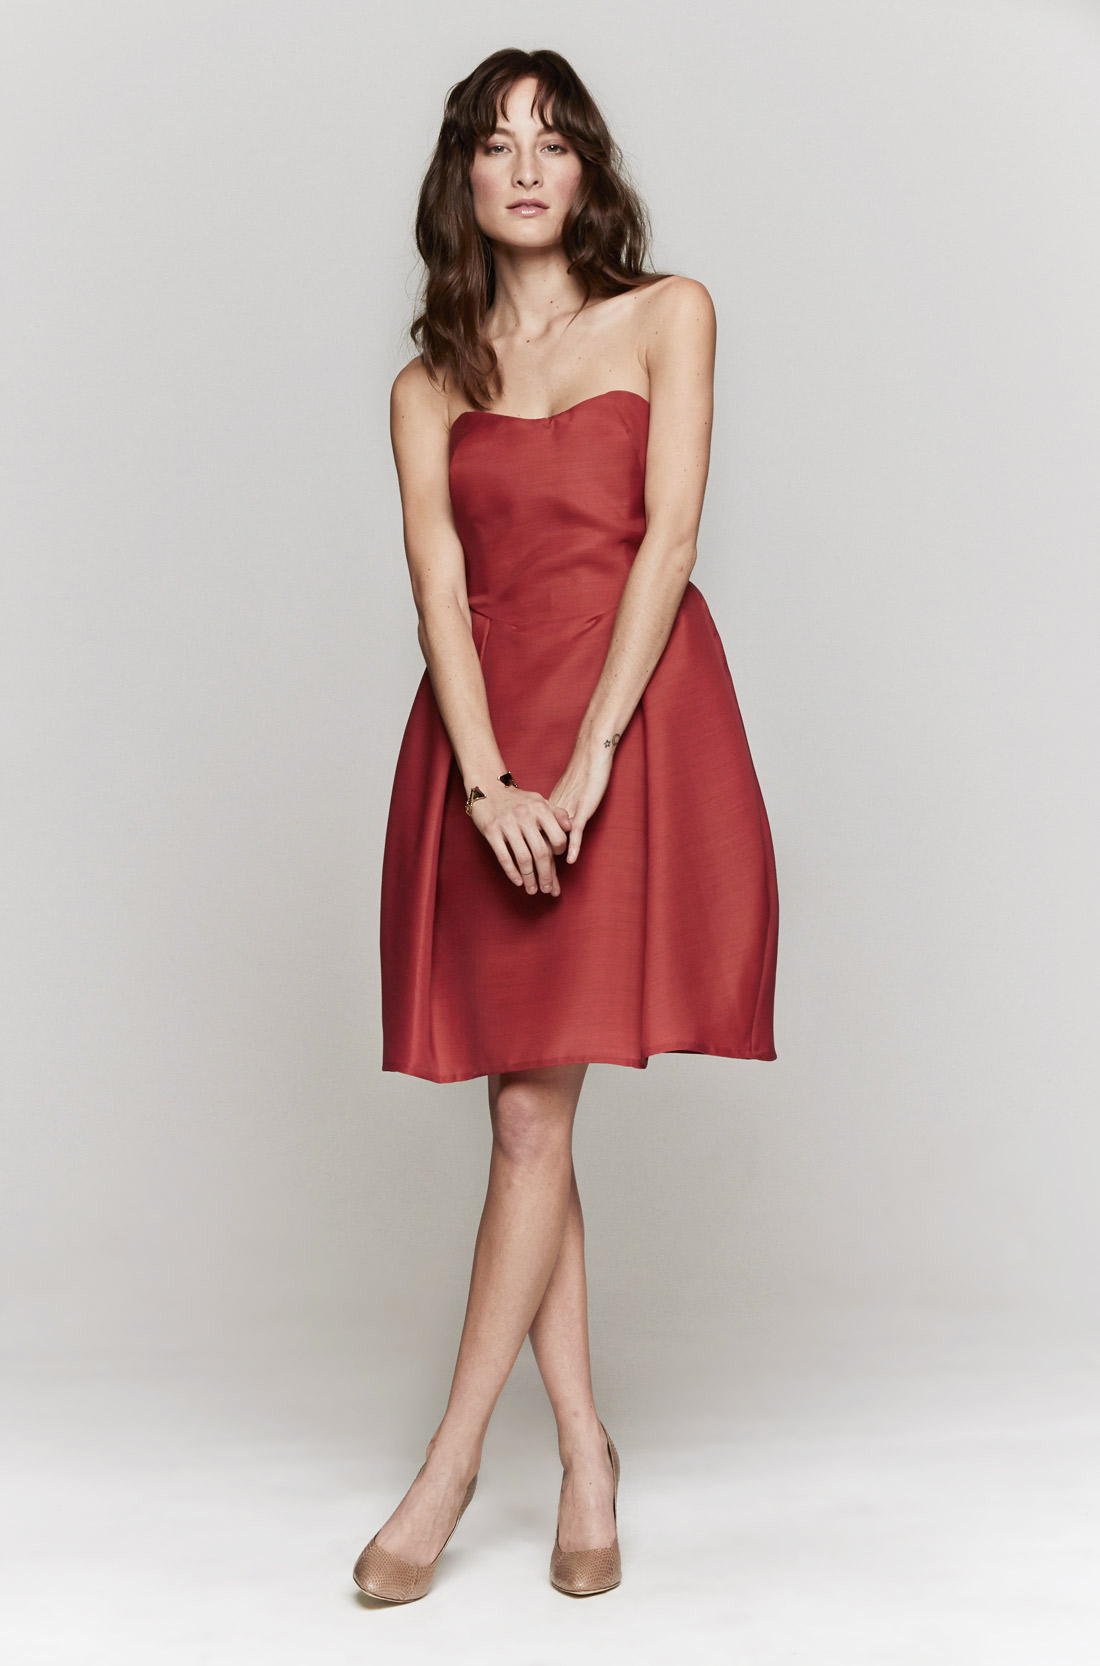 red strapless dresses - Dress Yp